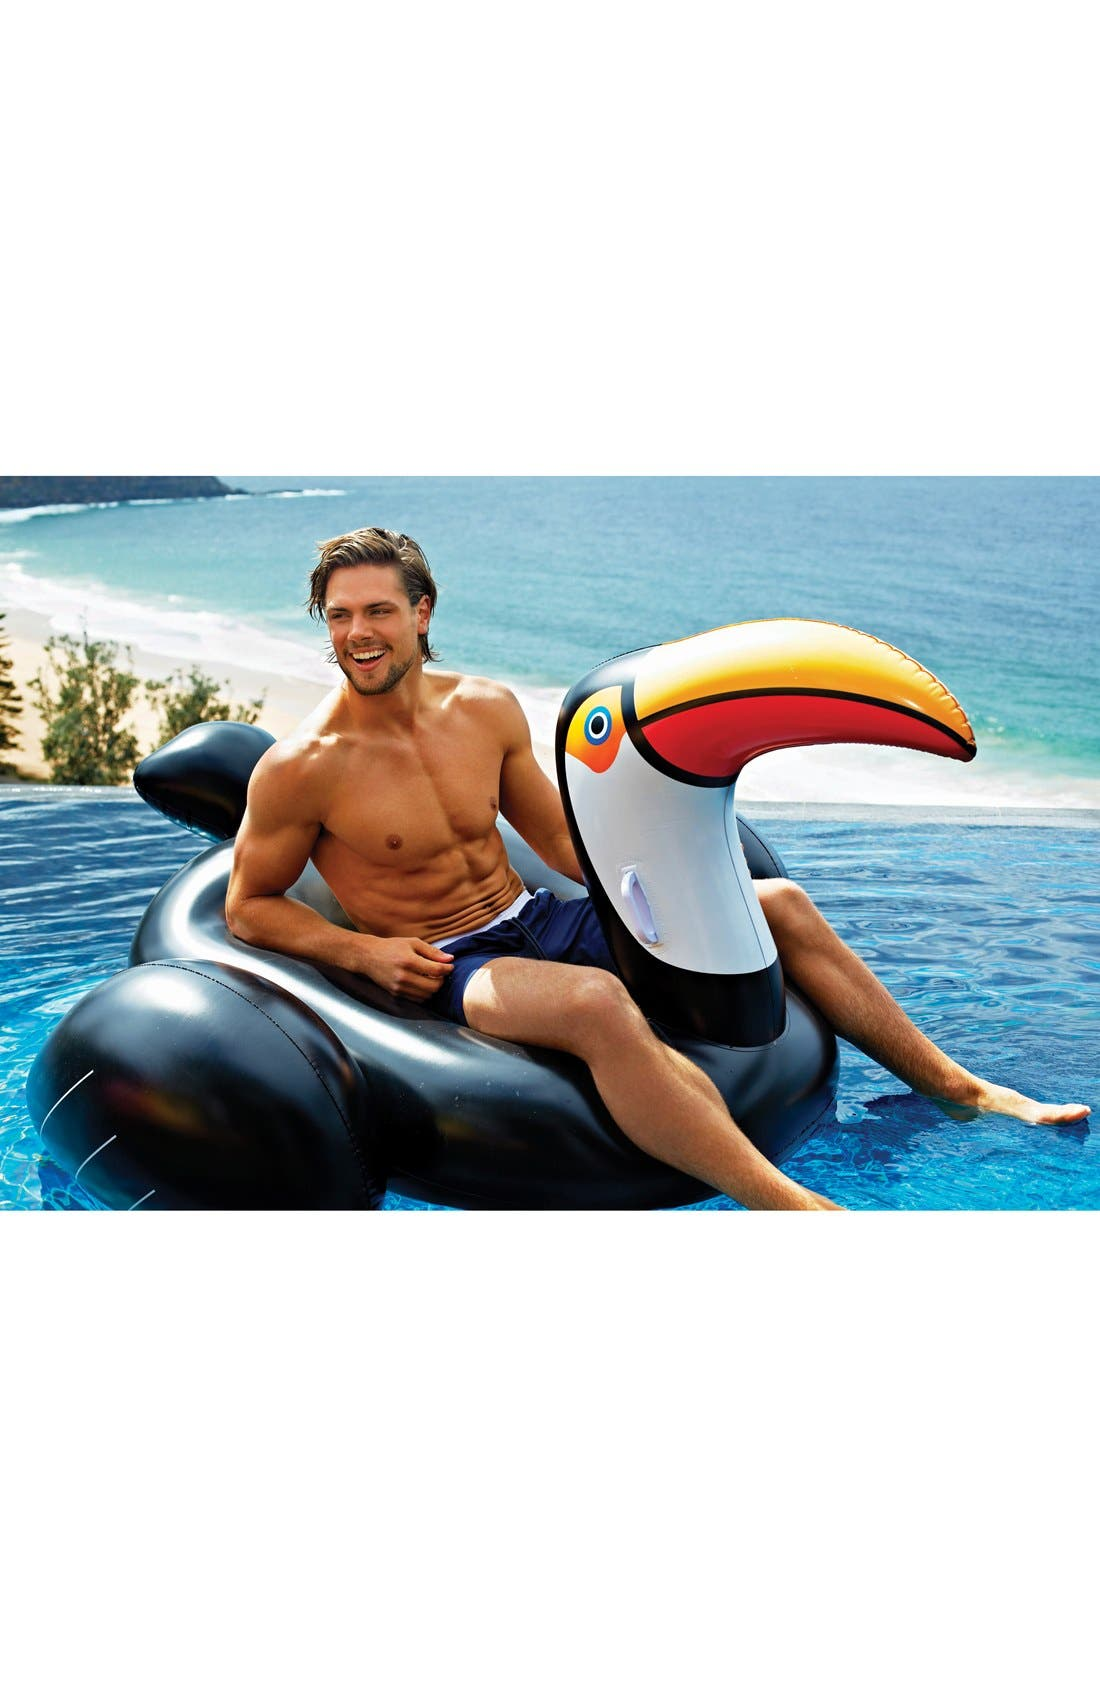 Alternate Image 2  - Sunnylife 'Really Big' Inflatable Toucan Pool Floatie